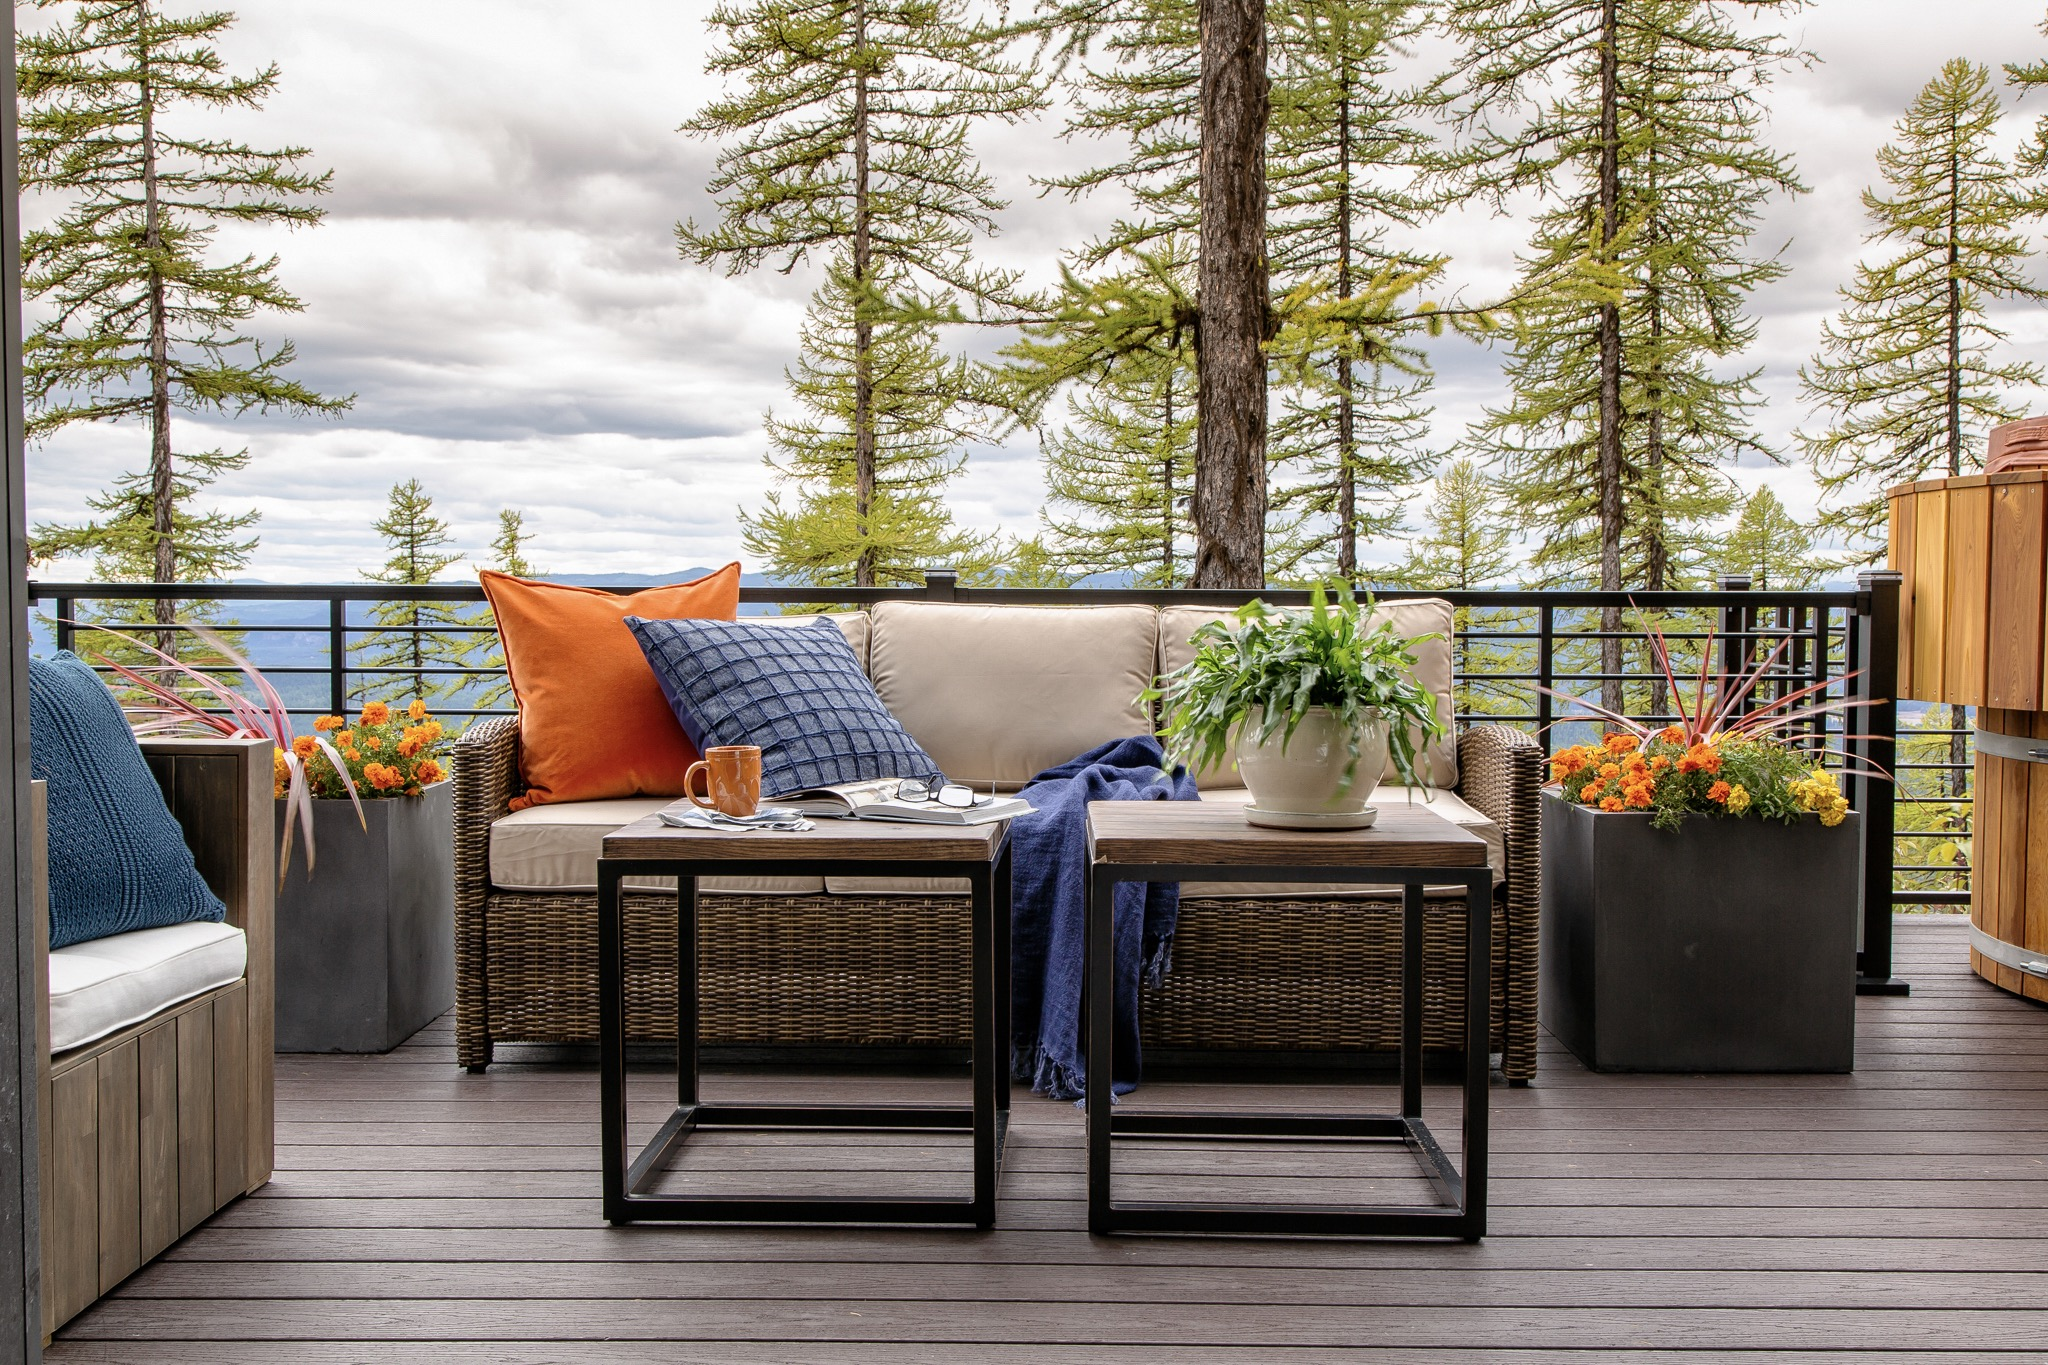 HGTV Dream Home 2019 in Whitefish, MT